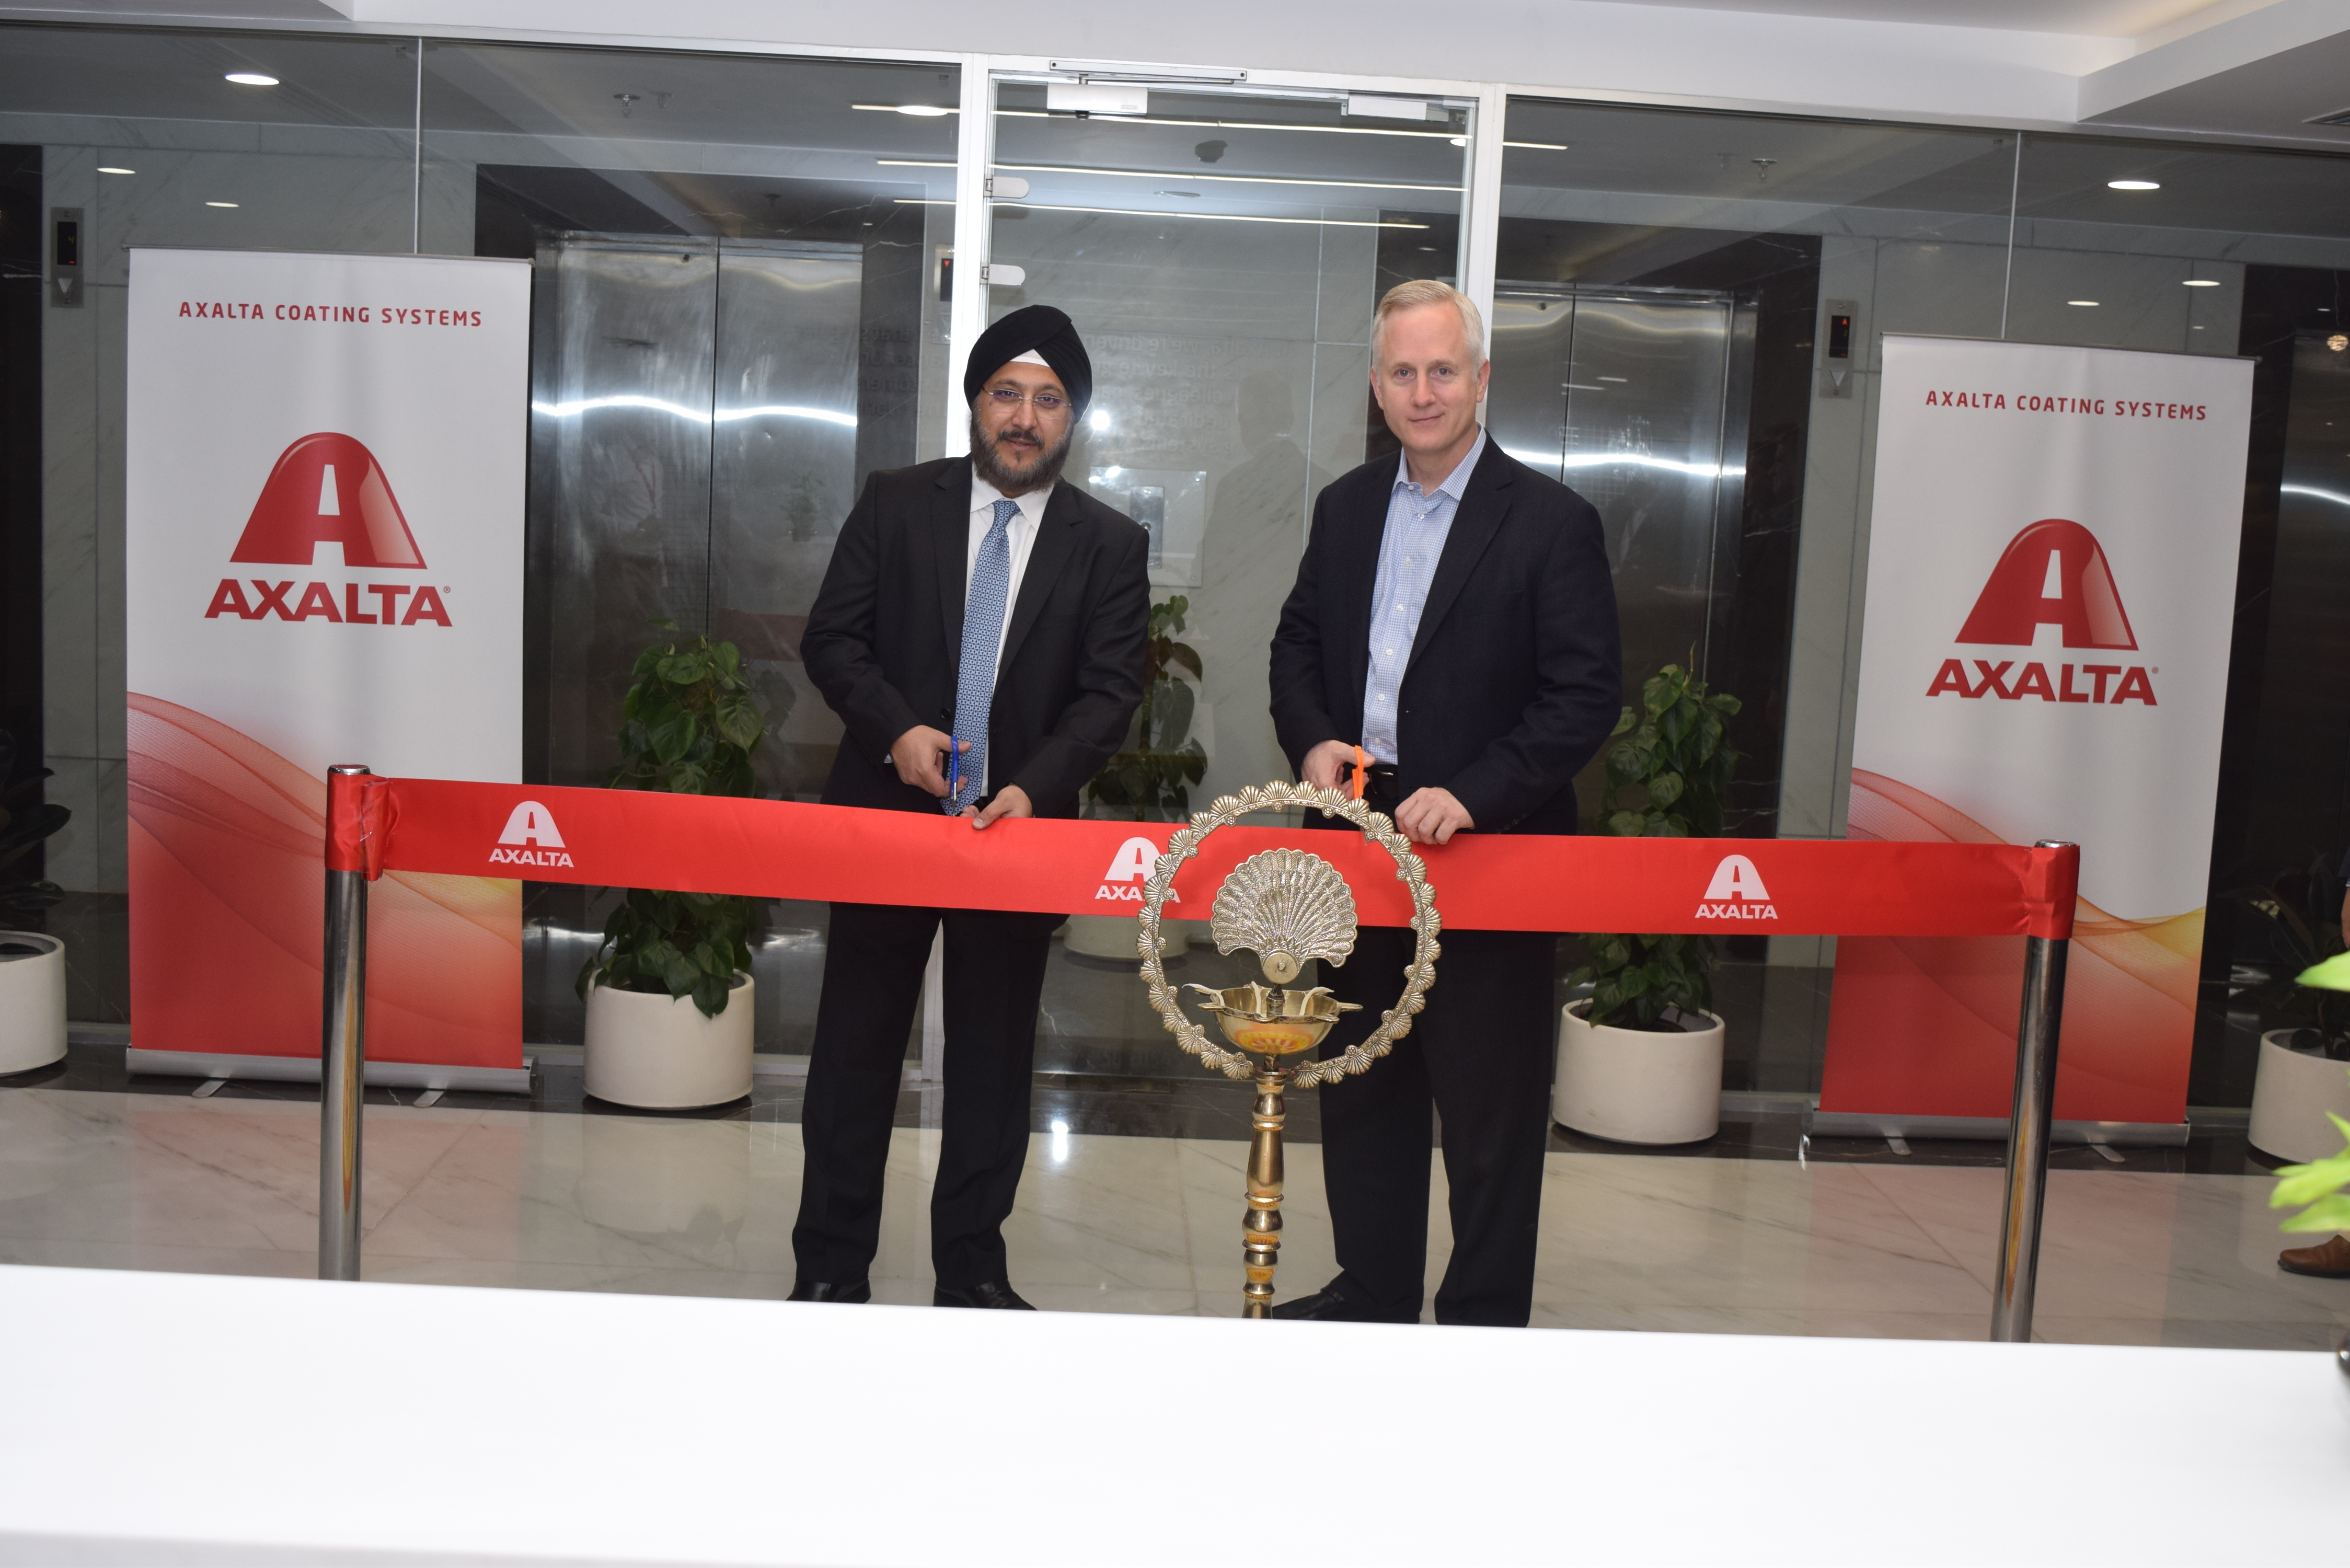 Sobers Sethi (Left), Axalta Vice President and President, Emerging Markets and Robert Bryant, Executive Vice President and Chief Financial Officer of Axalta cut ribbon at new India headquarters' opening (Photo: Axalta)